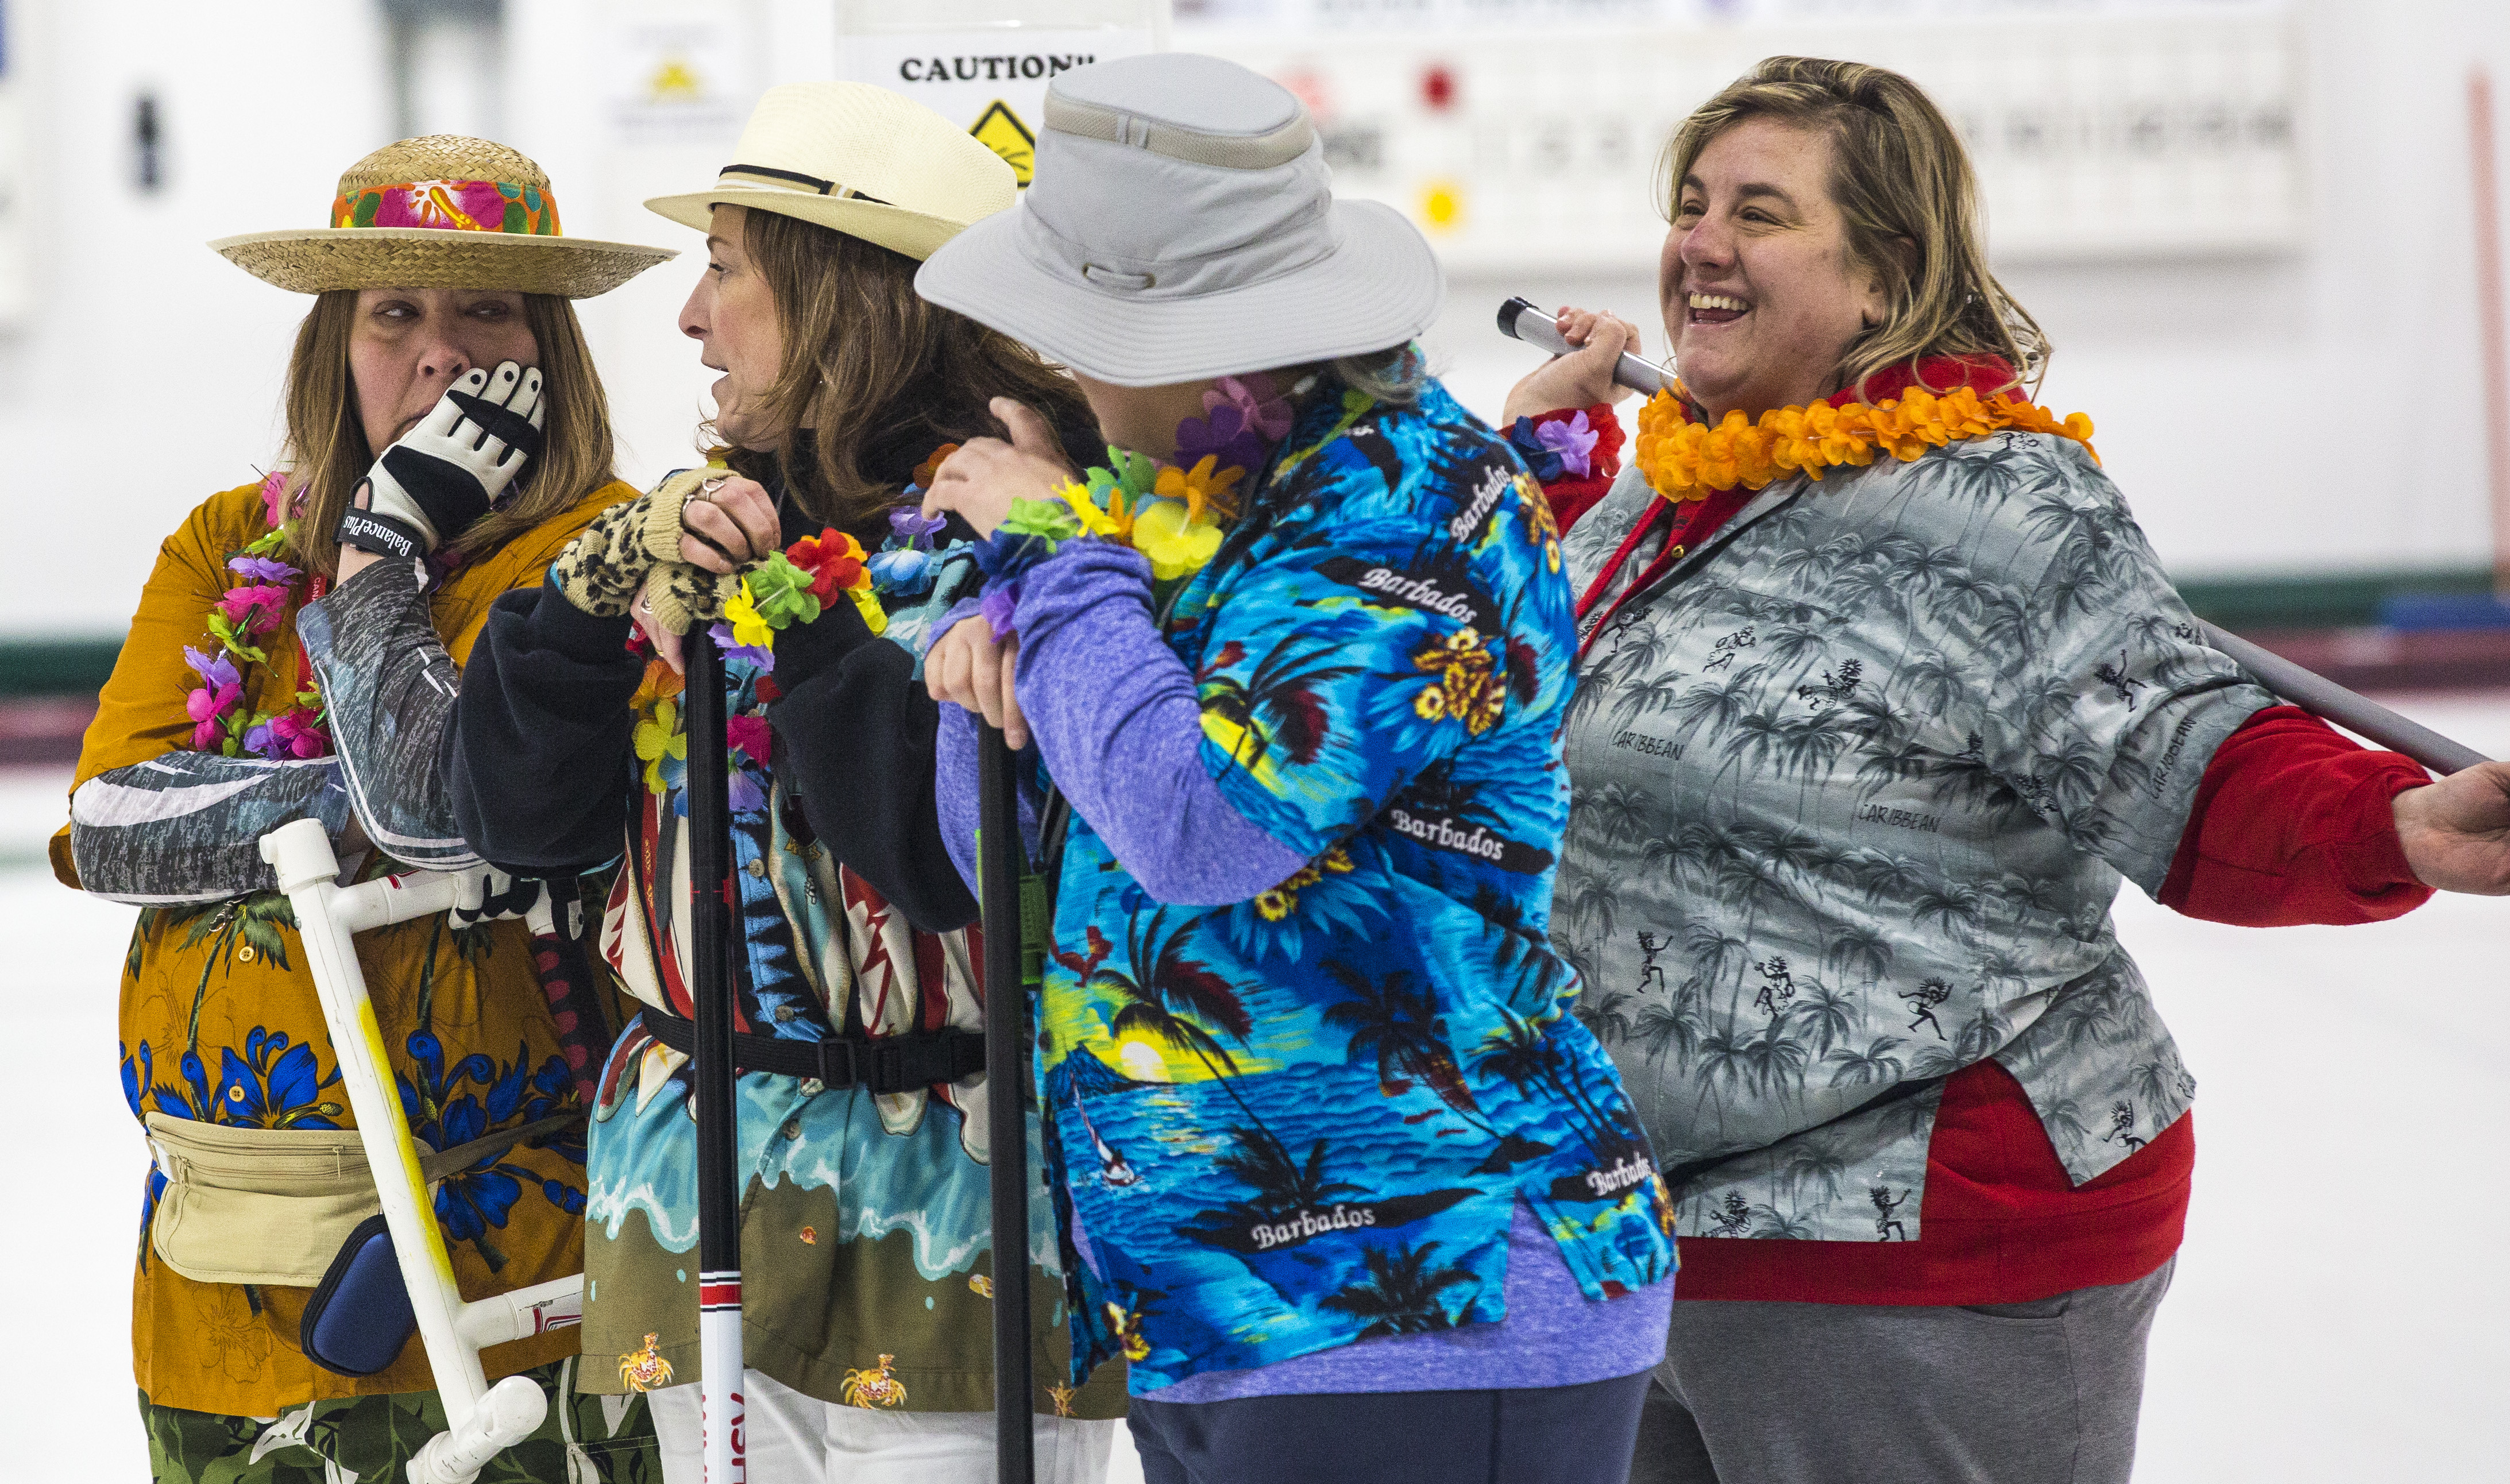 Sheri Lynne Lintick, Leilah Cross, Tammy Sehn and Kym Sheppard take part in the Whitehorse Curling Club's Tack Tourist Women's bonspiel on Sat. Jan. 28, 2017.